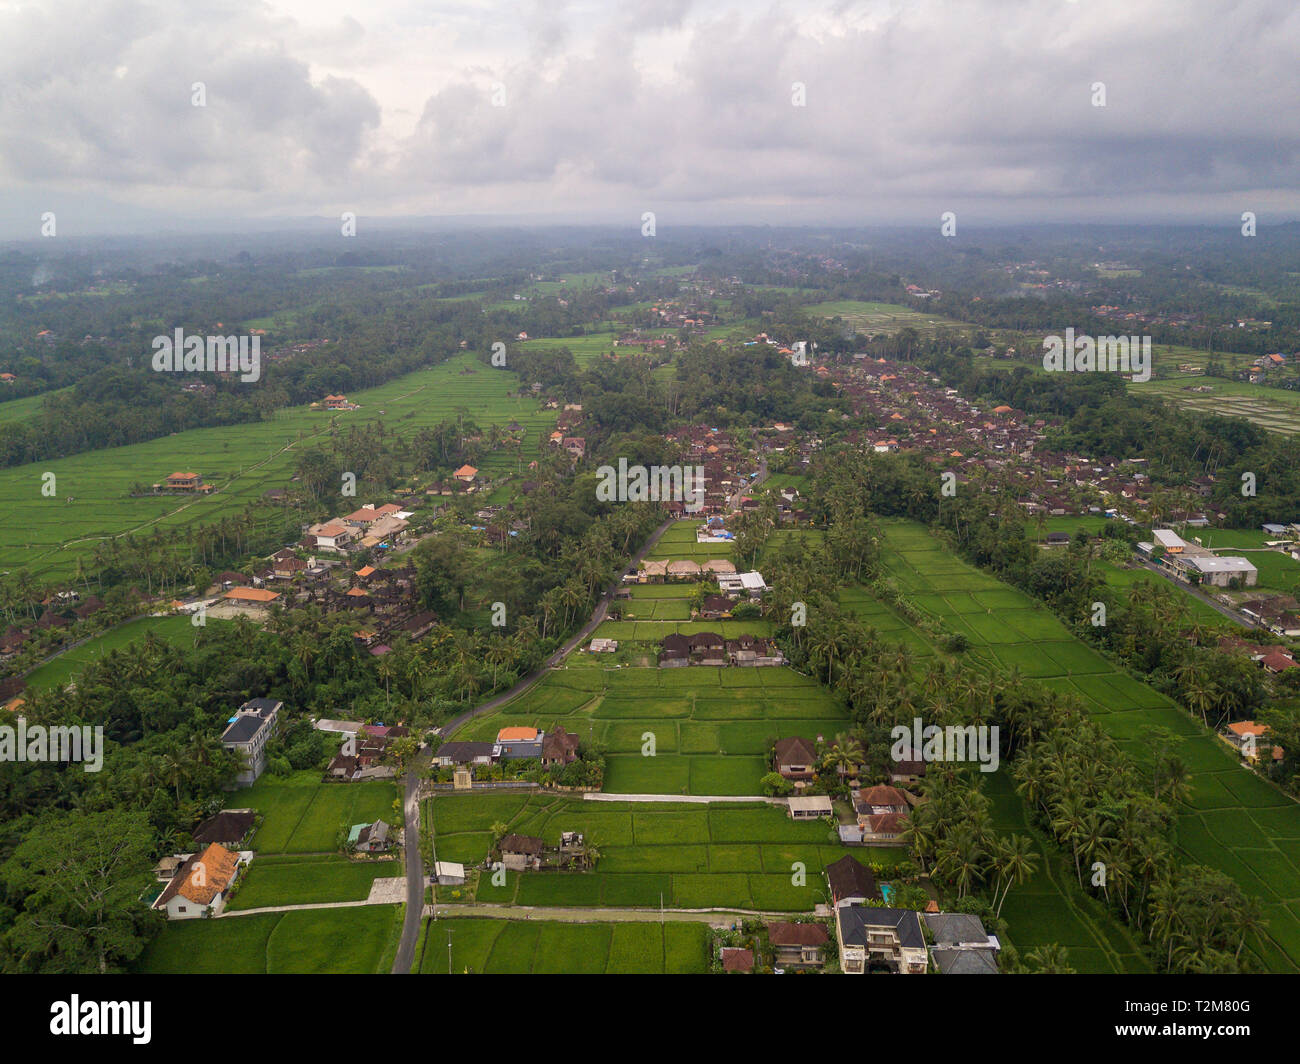 Aerial view of Ubud countryside in Bali, Indonesia - Stock Image